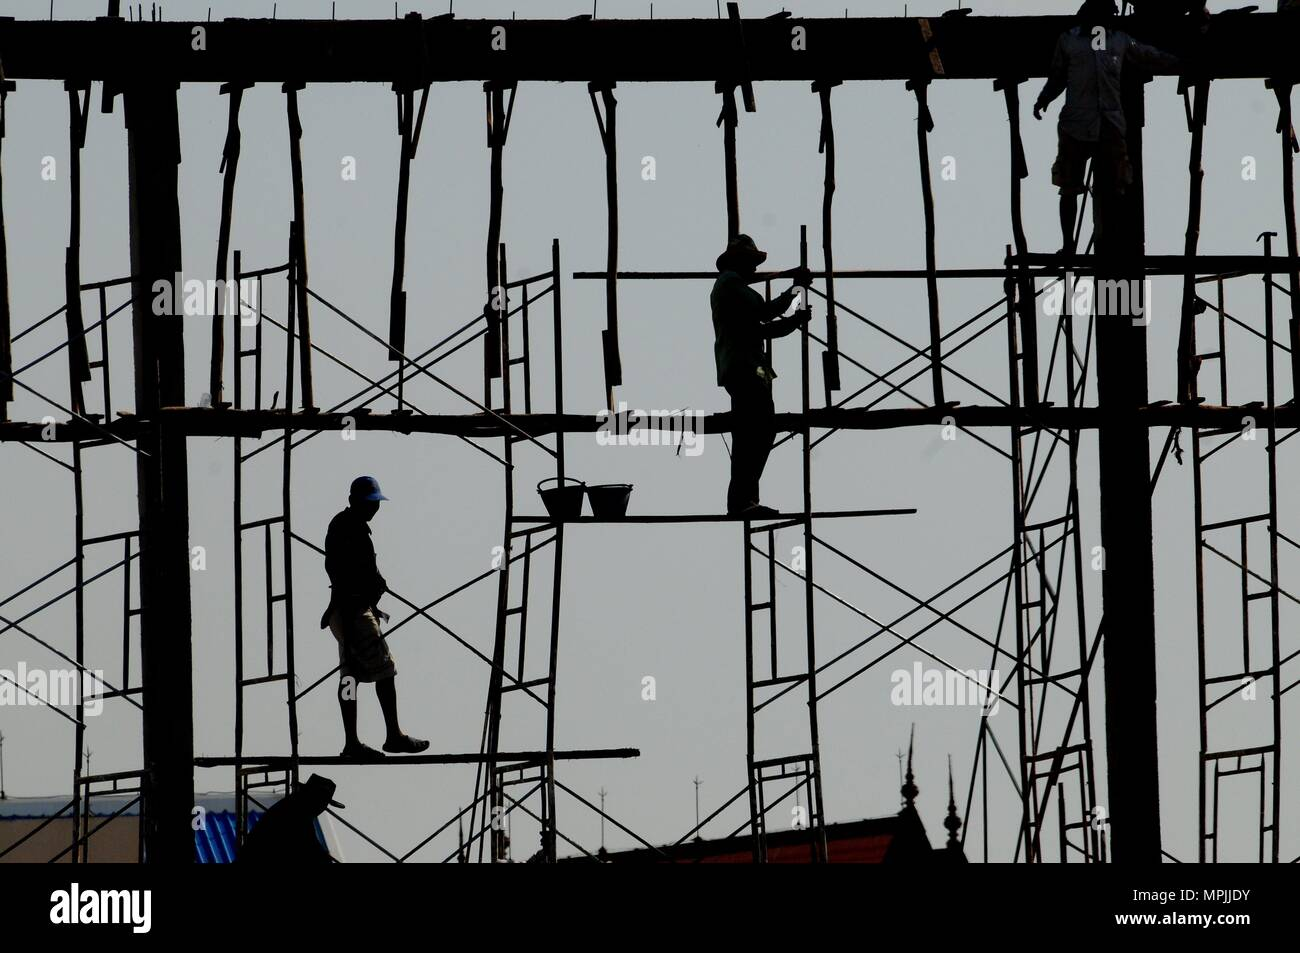 Silhouette of men working on a Bamboo Scaffolding, Phnom Penh, Cambodia - Stock Image